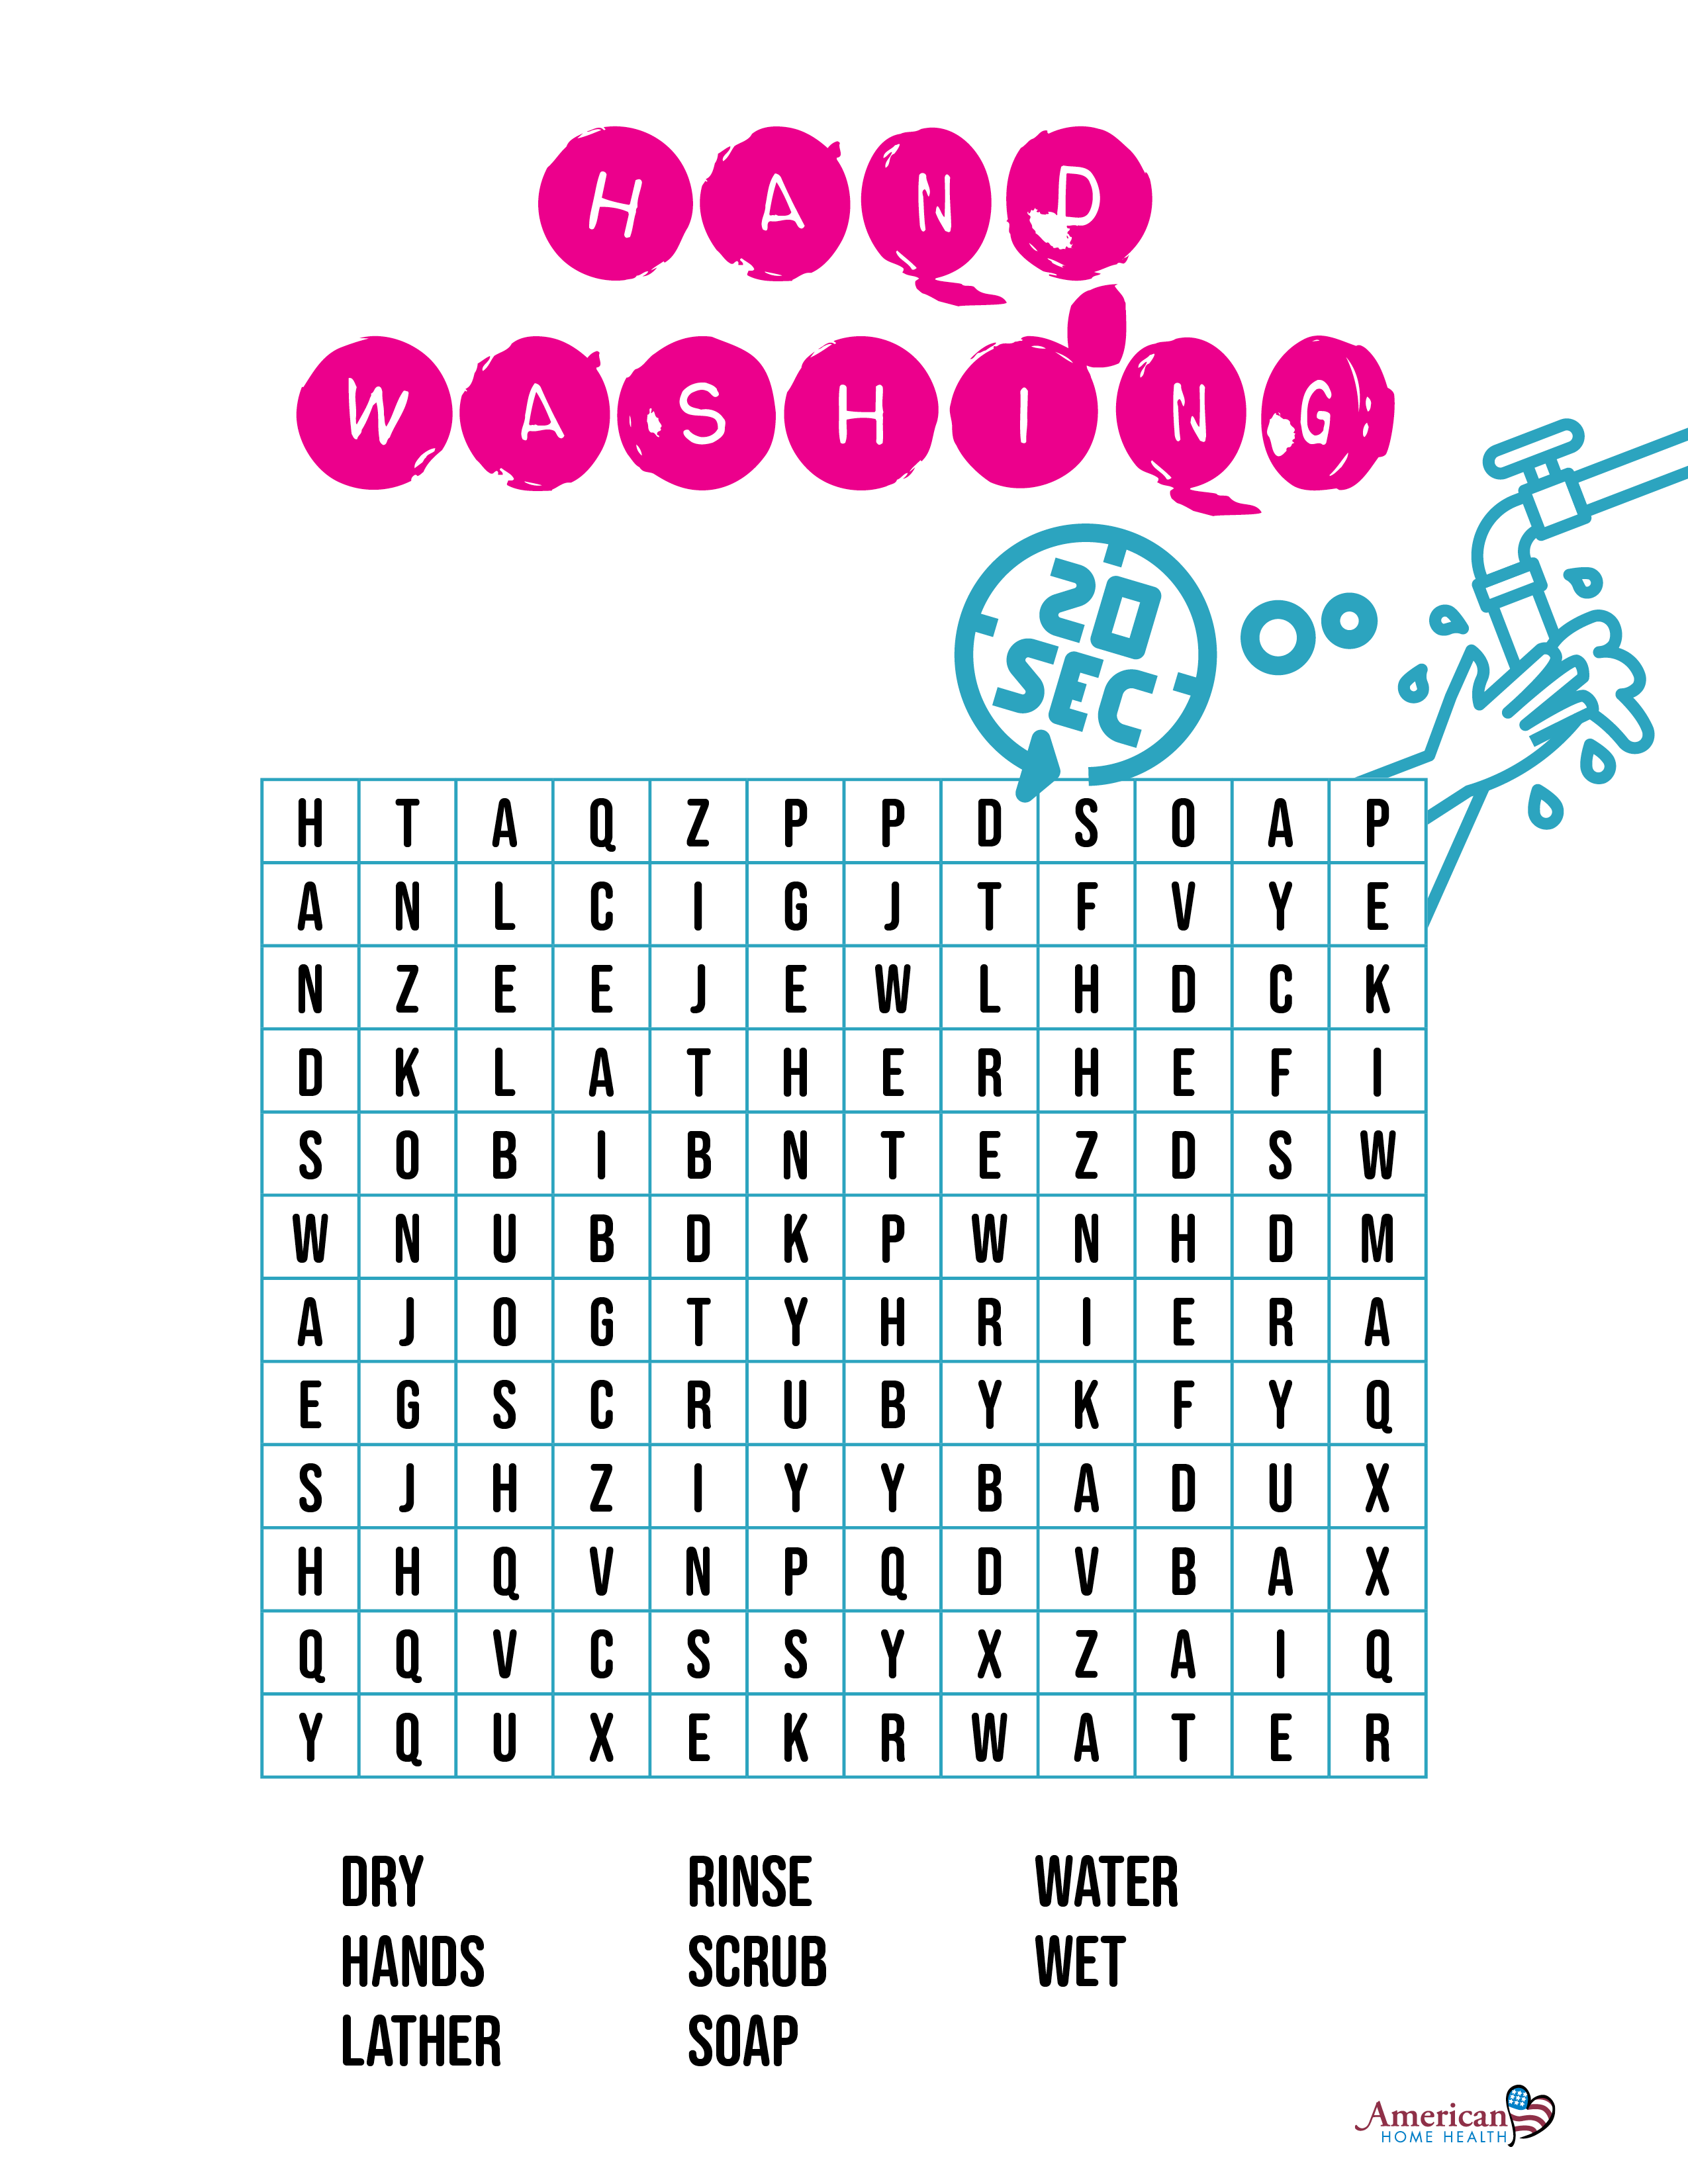 Hand Washing Word Search Puzzle For Kids Puzzles For Kids Word Search Puzzle Health Words [ 3300 x 2550 Pixel ]